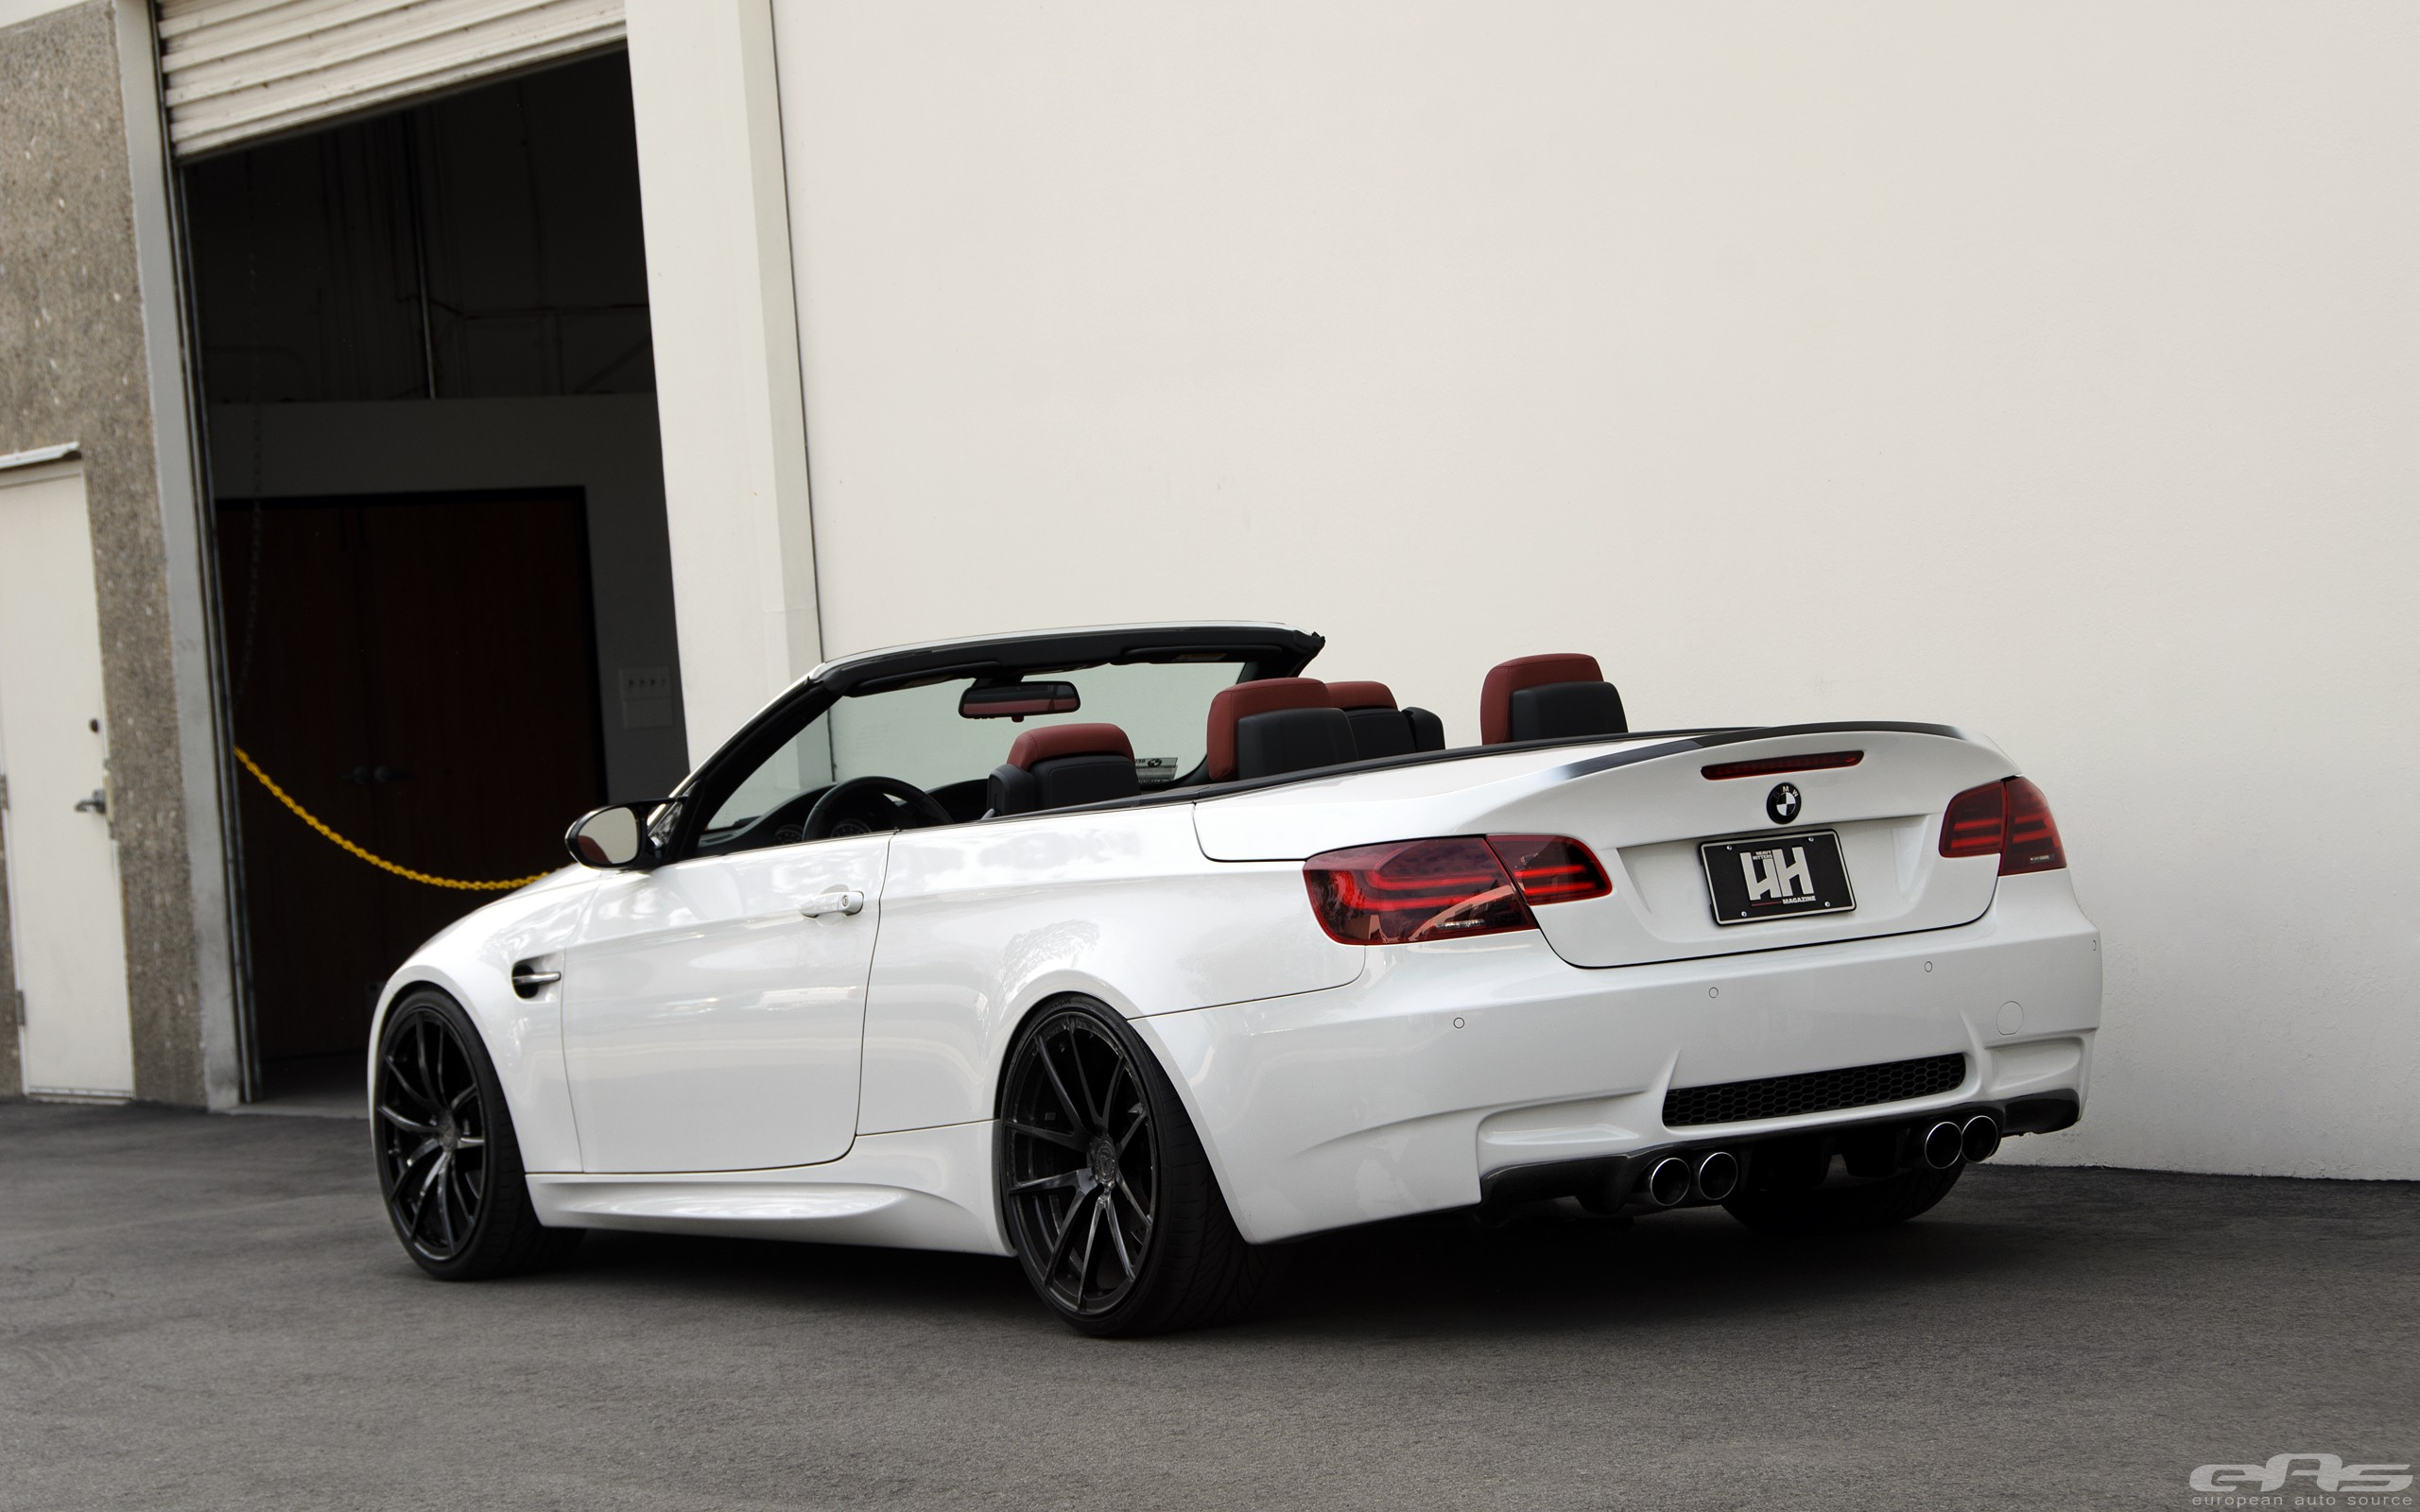 Tuned Bmw E M Convertible Puts Down Hp At The Wheels On The Dyno Video